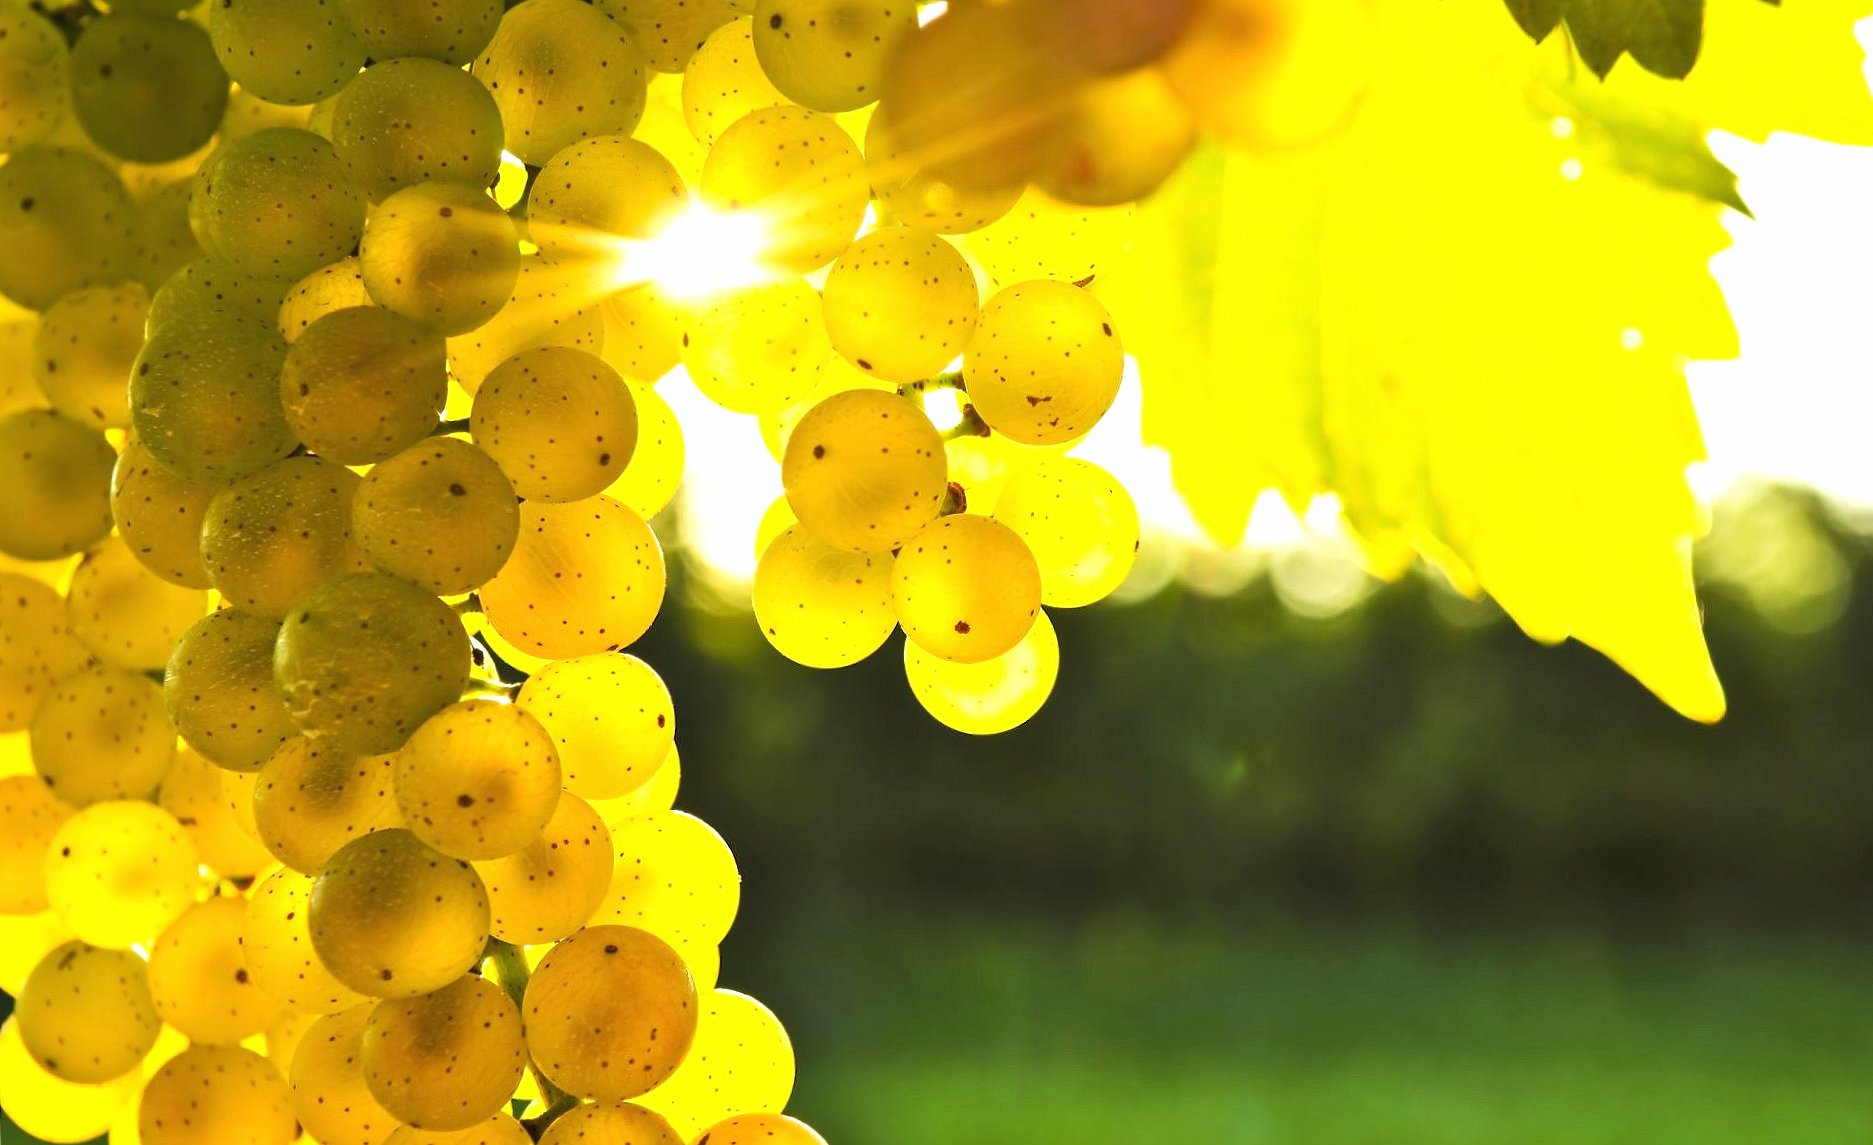 Golden grapes wallpapers HD quality